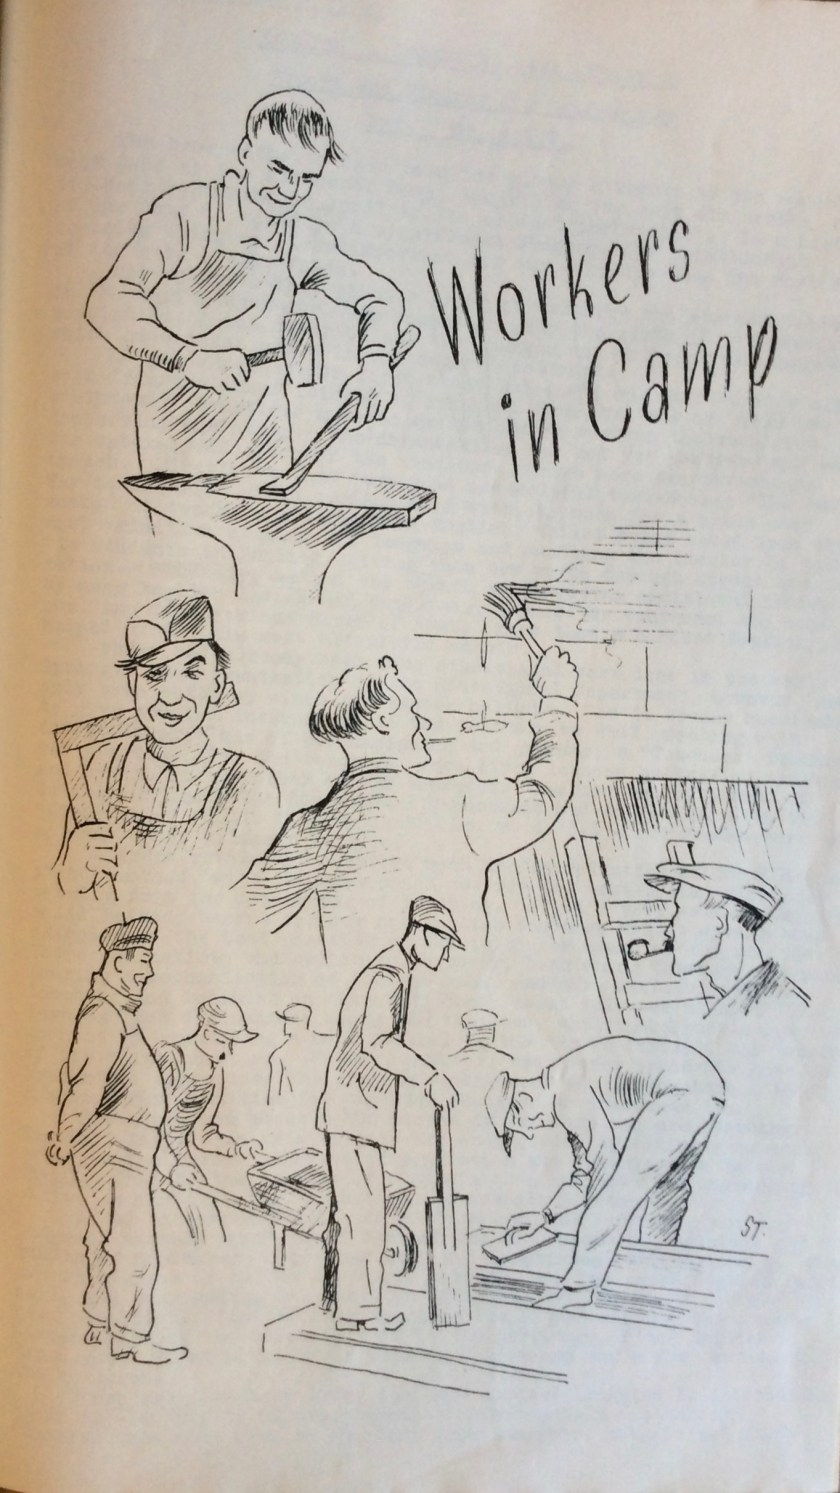 Kitchener Camp Review, October 1939, page 6